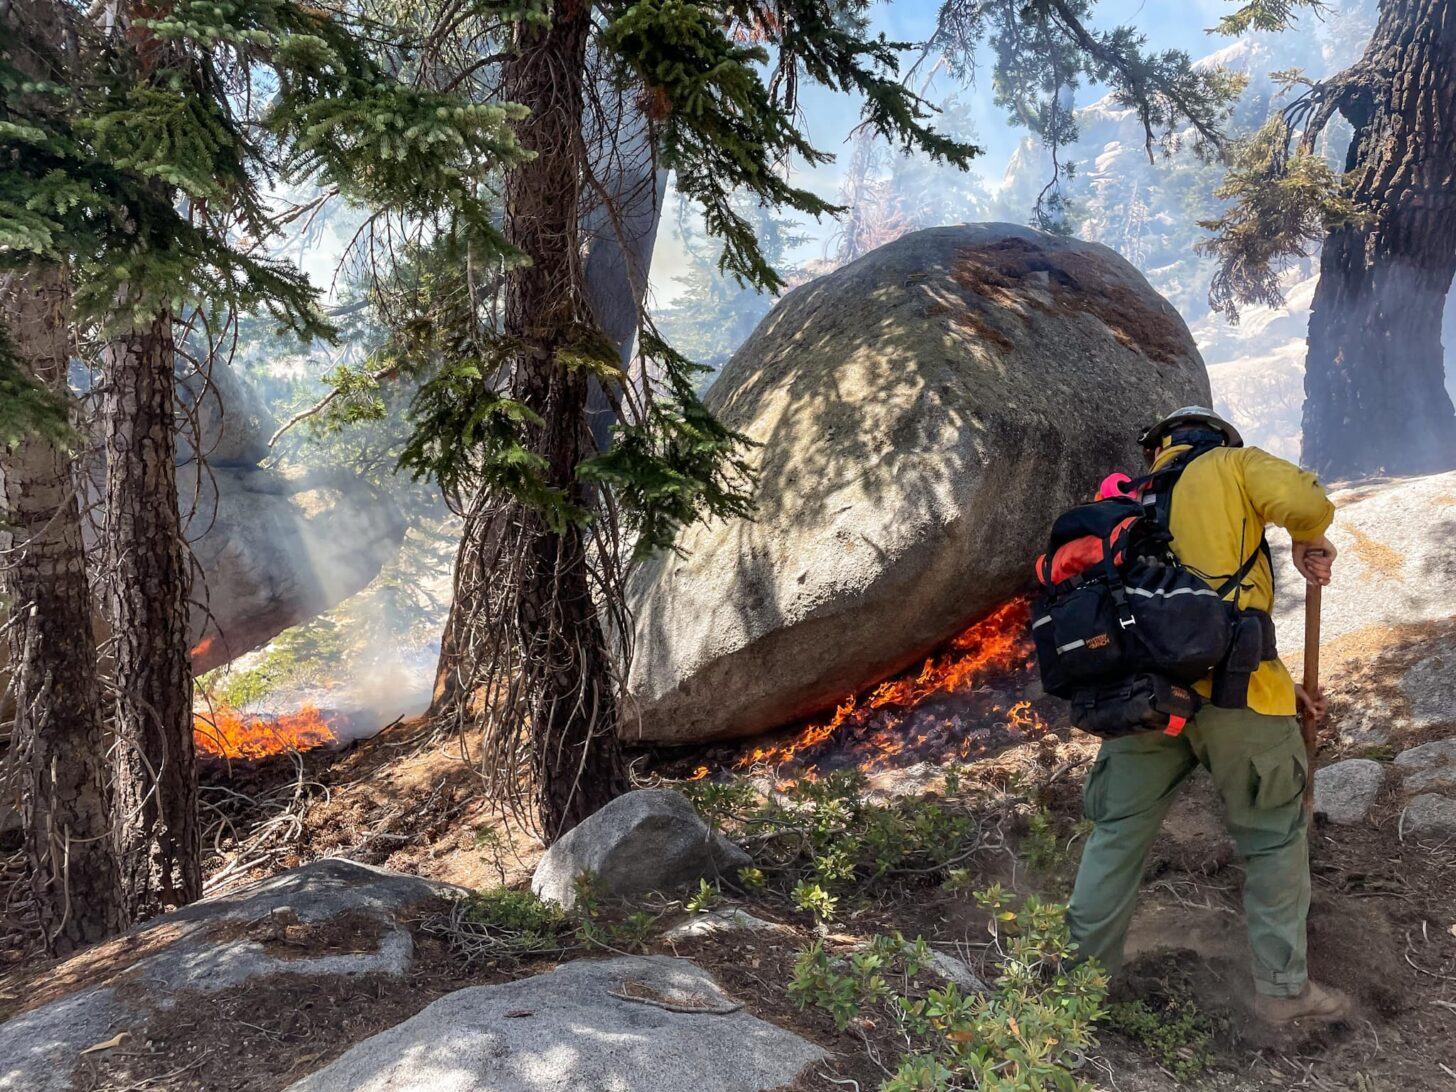 A firefighter wearing a backpack and helmet digs at the ground. Smoke hazes the photo, and flames are visible underneath a boulder in the middleground.